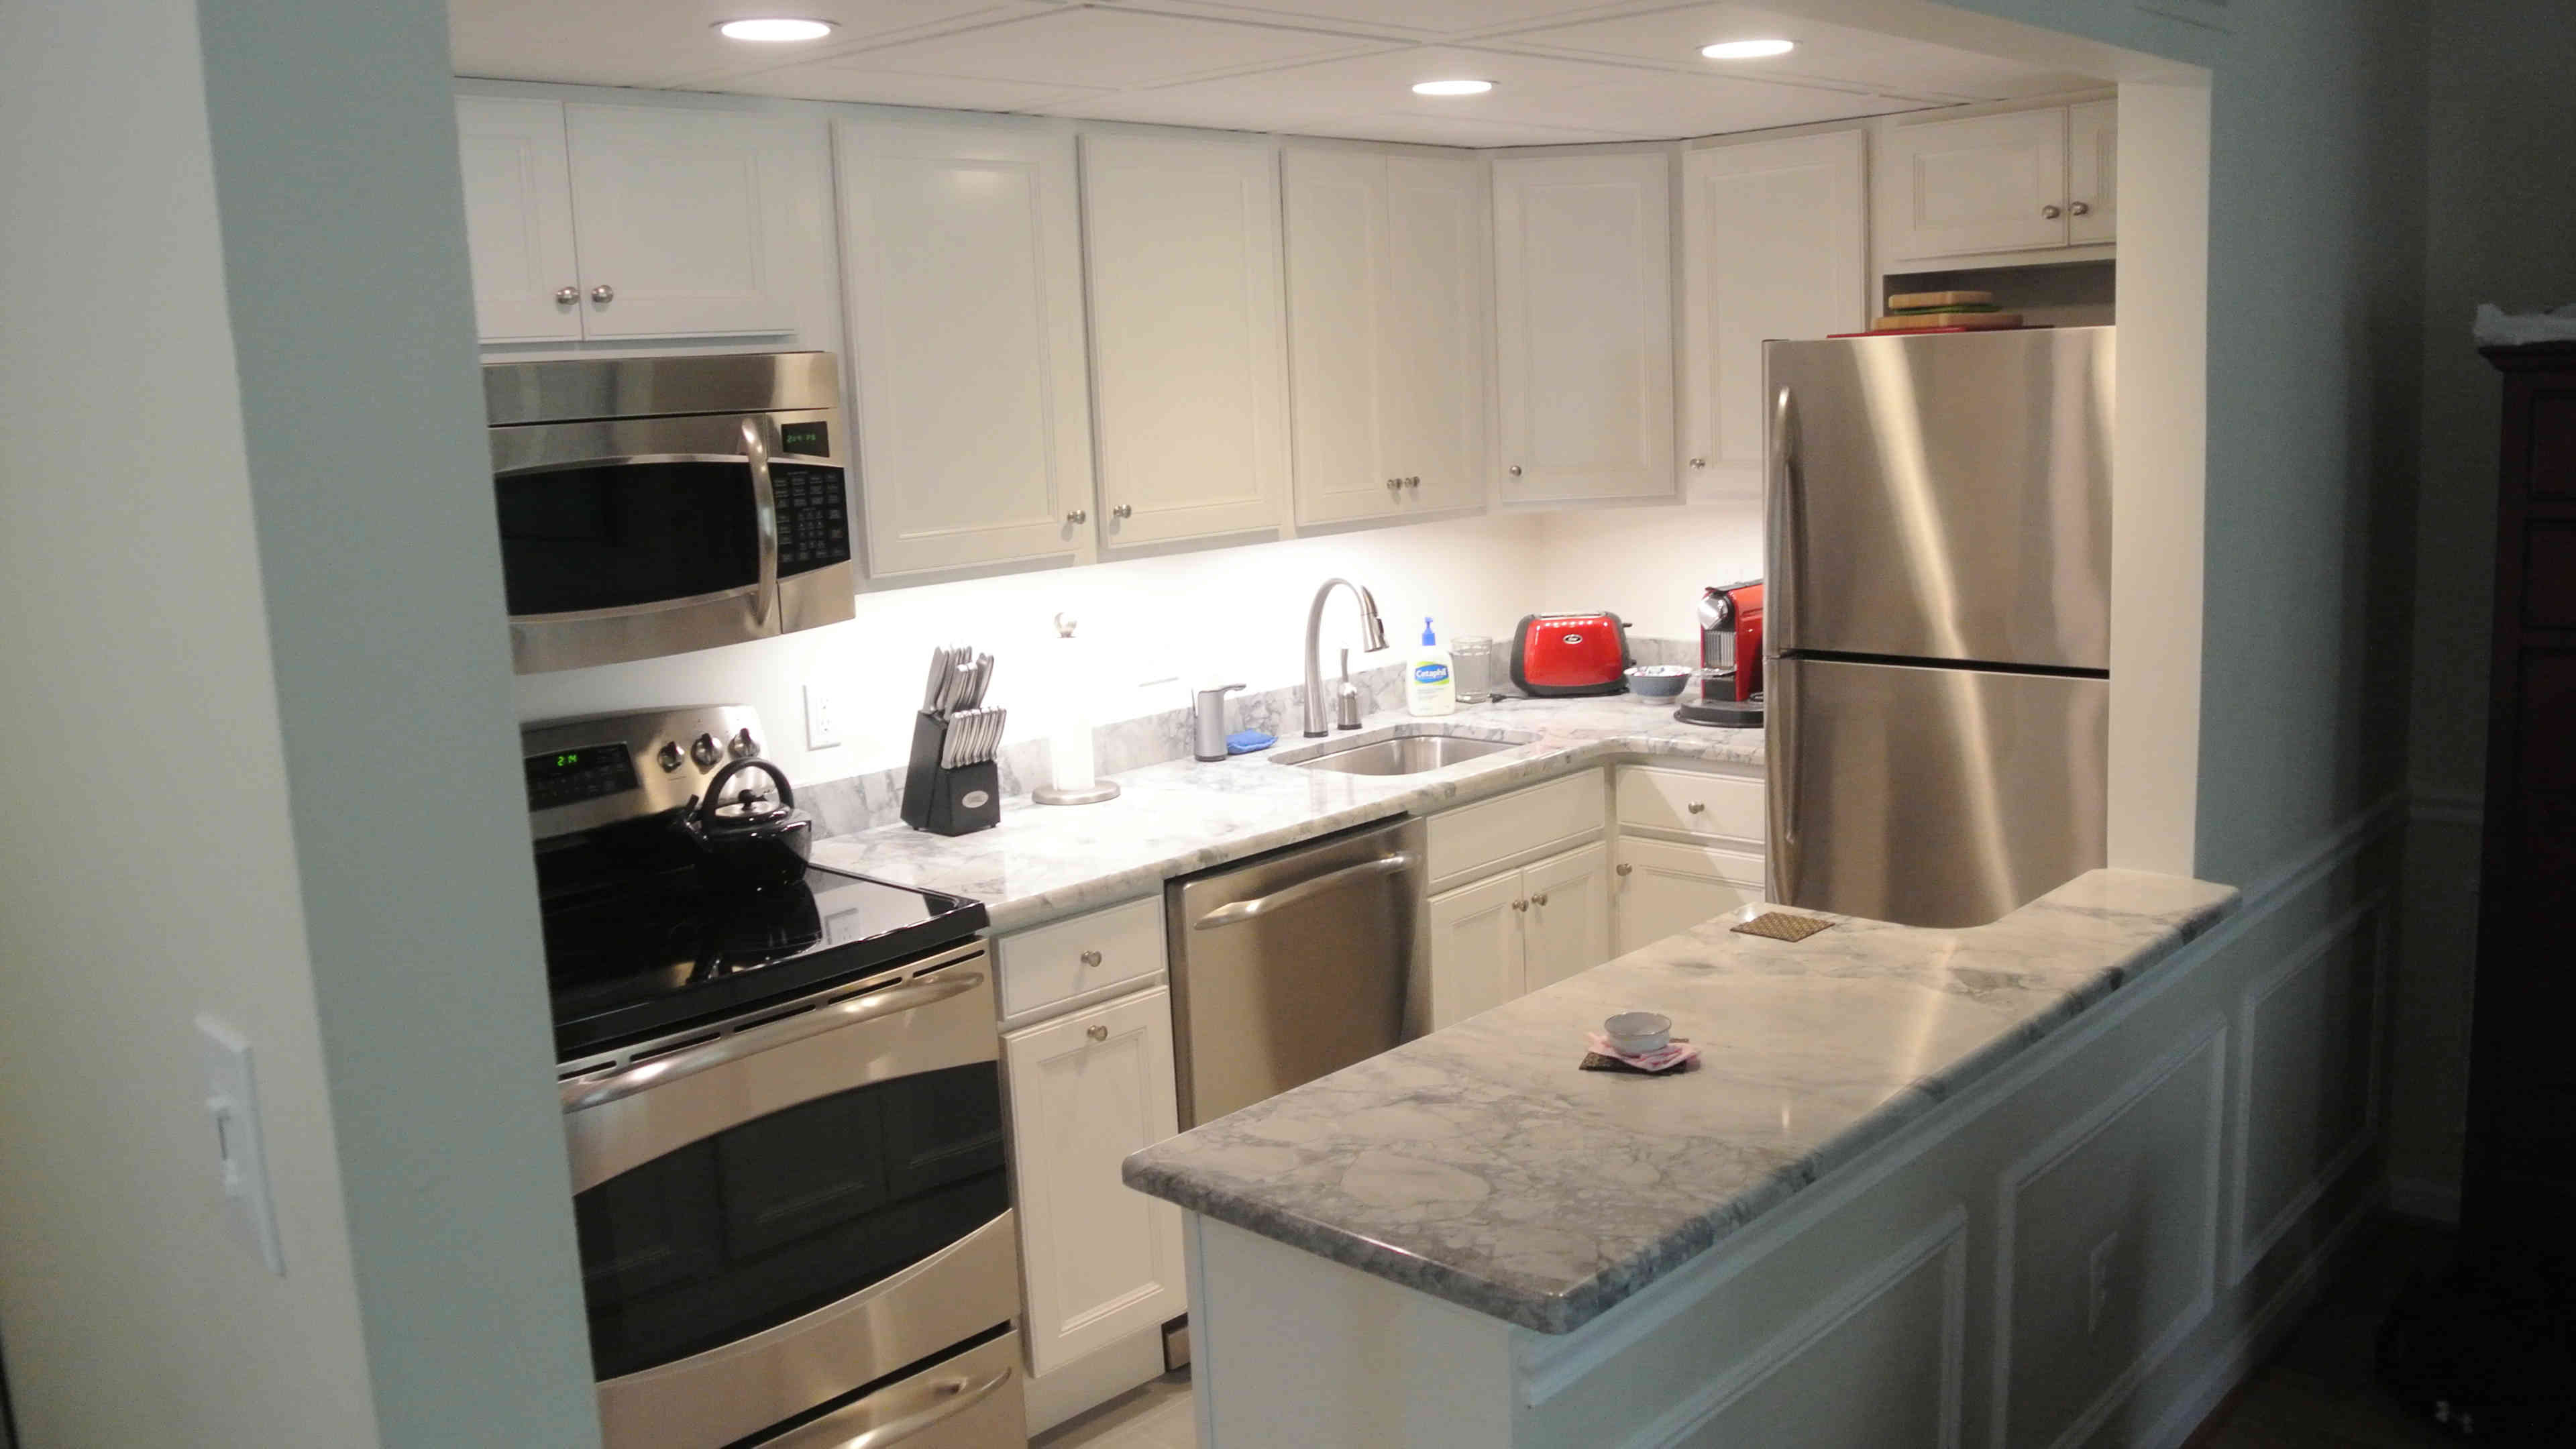 Kitchen Remodeling Washington Dc Awesome Kitchen Remodeling In Washington Dc & Bethesda Md  Melness . Review